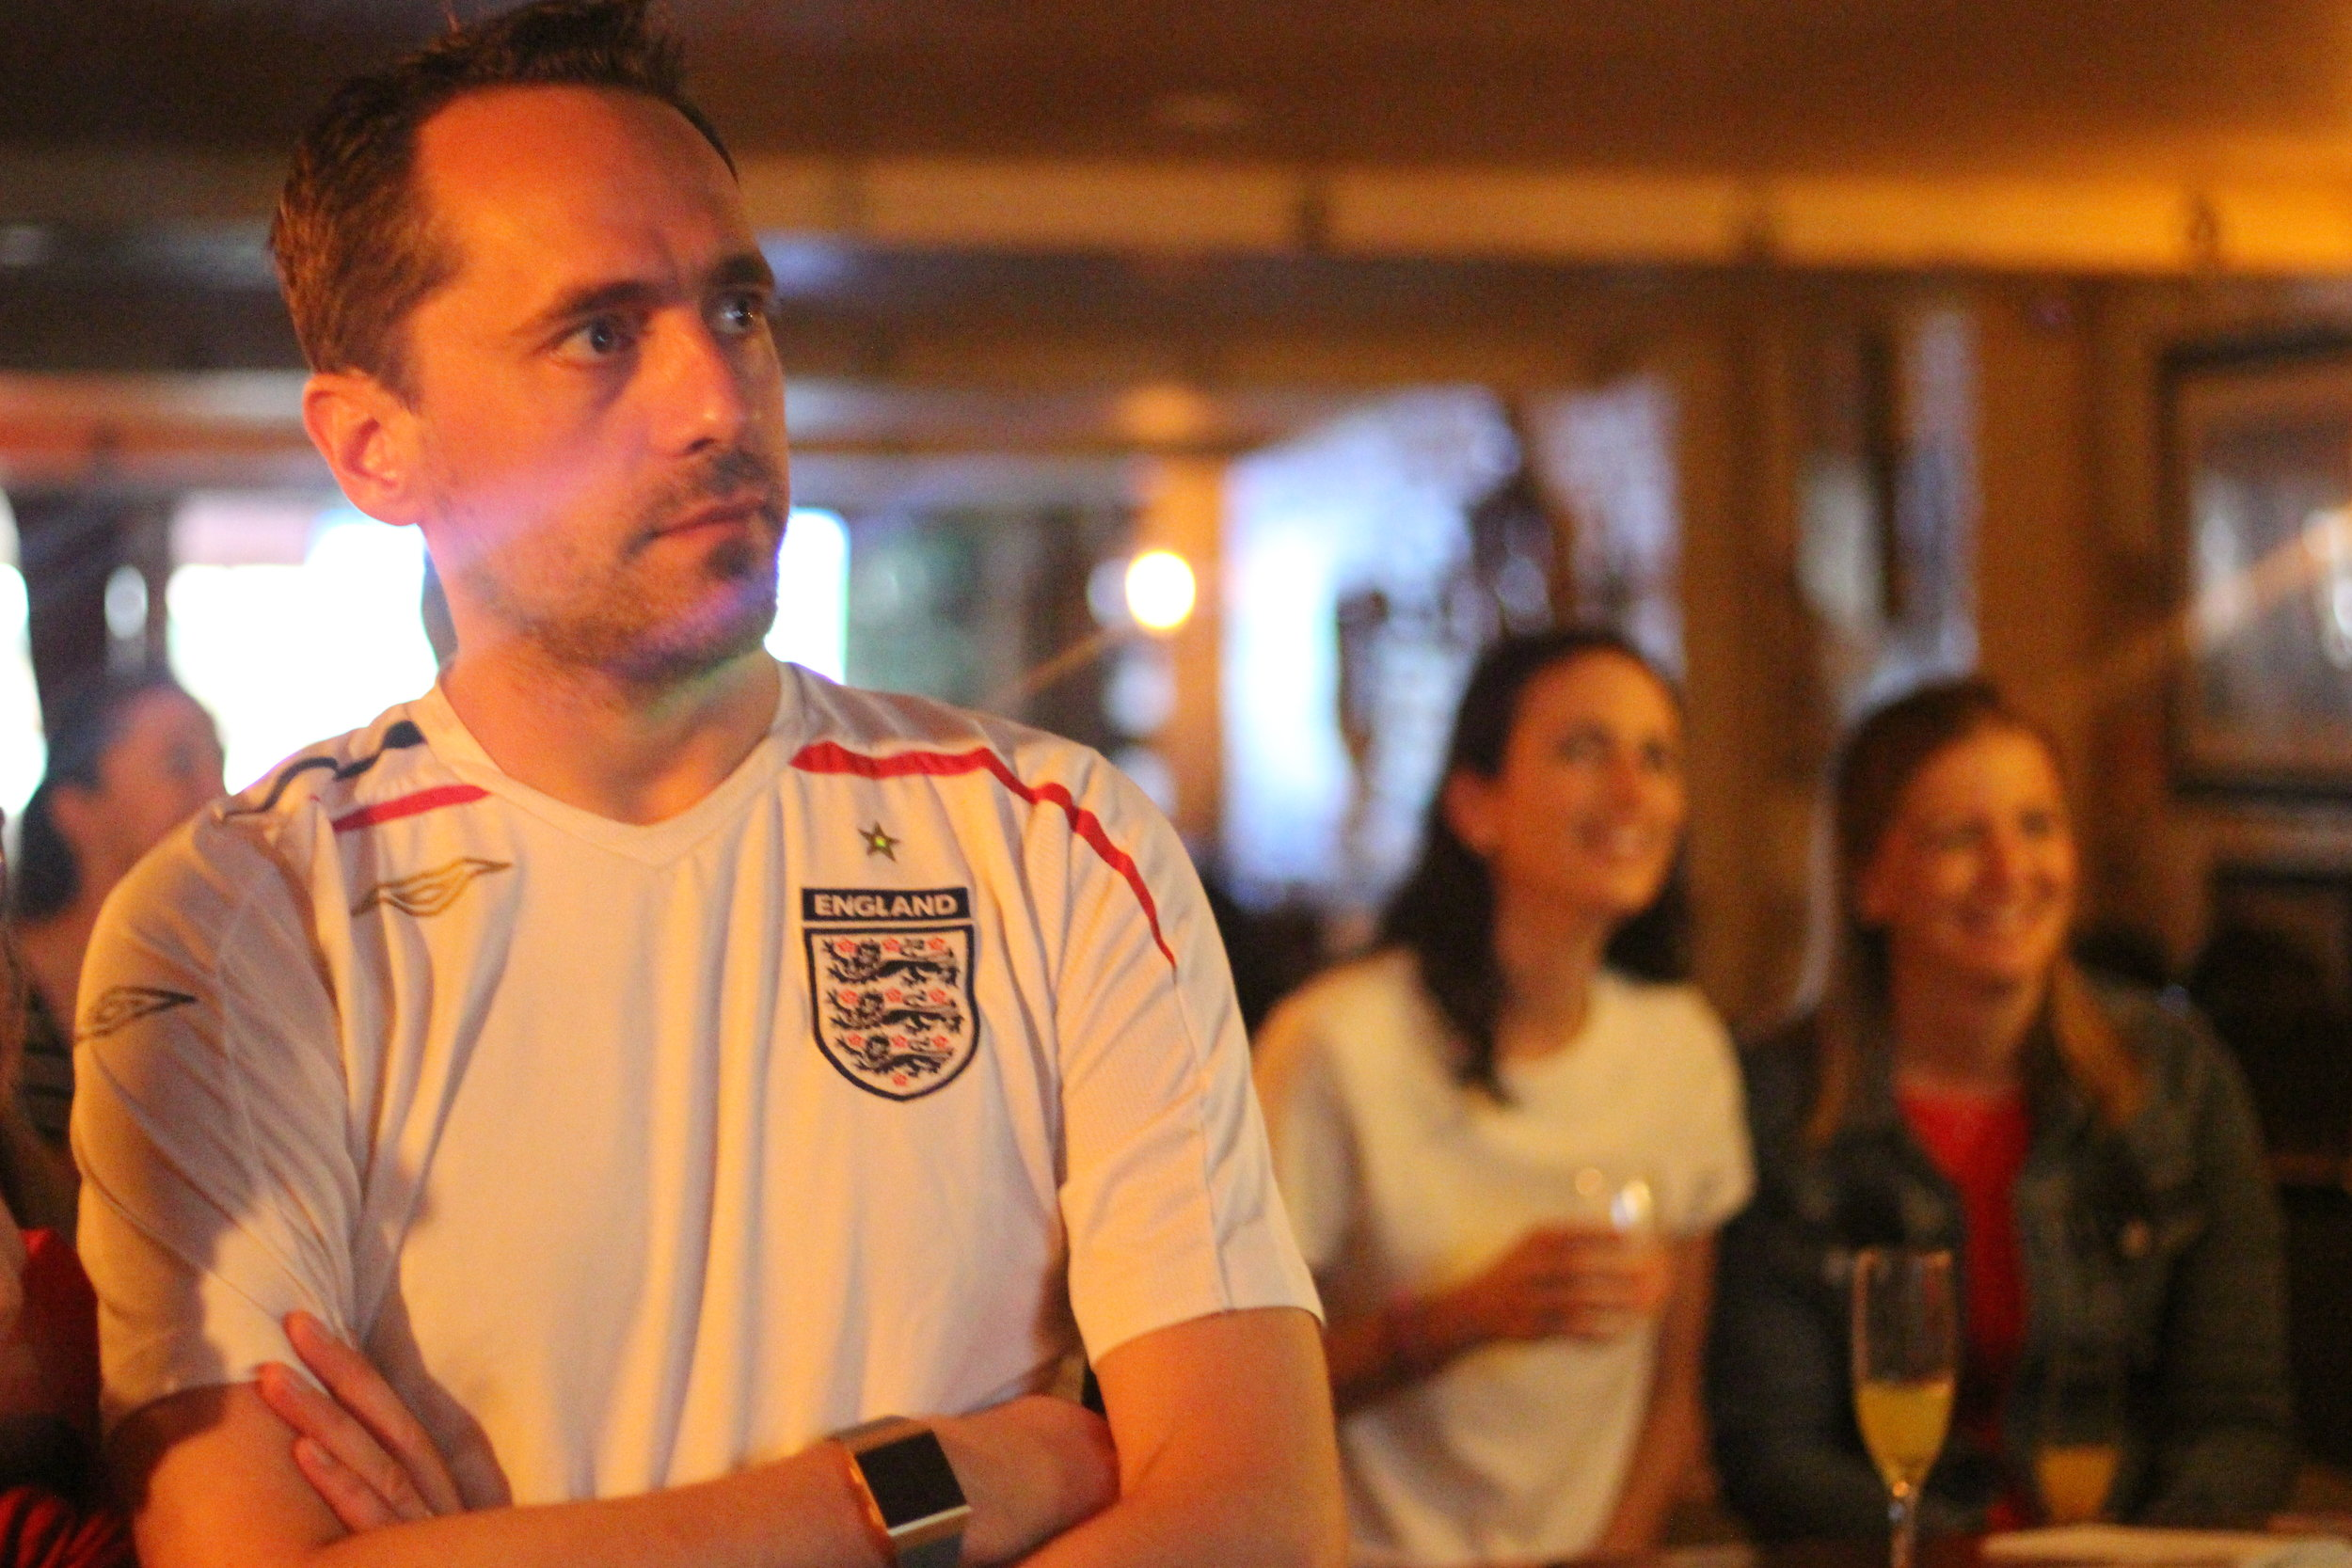 ENGLAND v. PANAMA WORLD CUP SCREENING